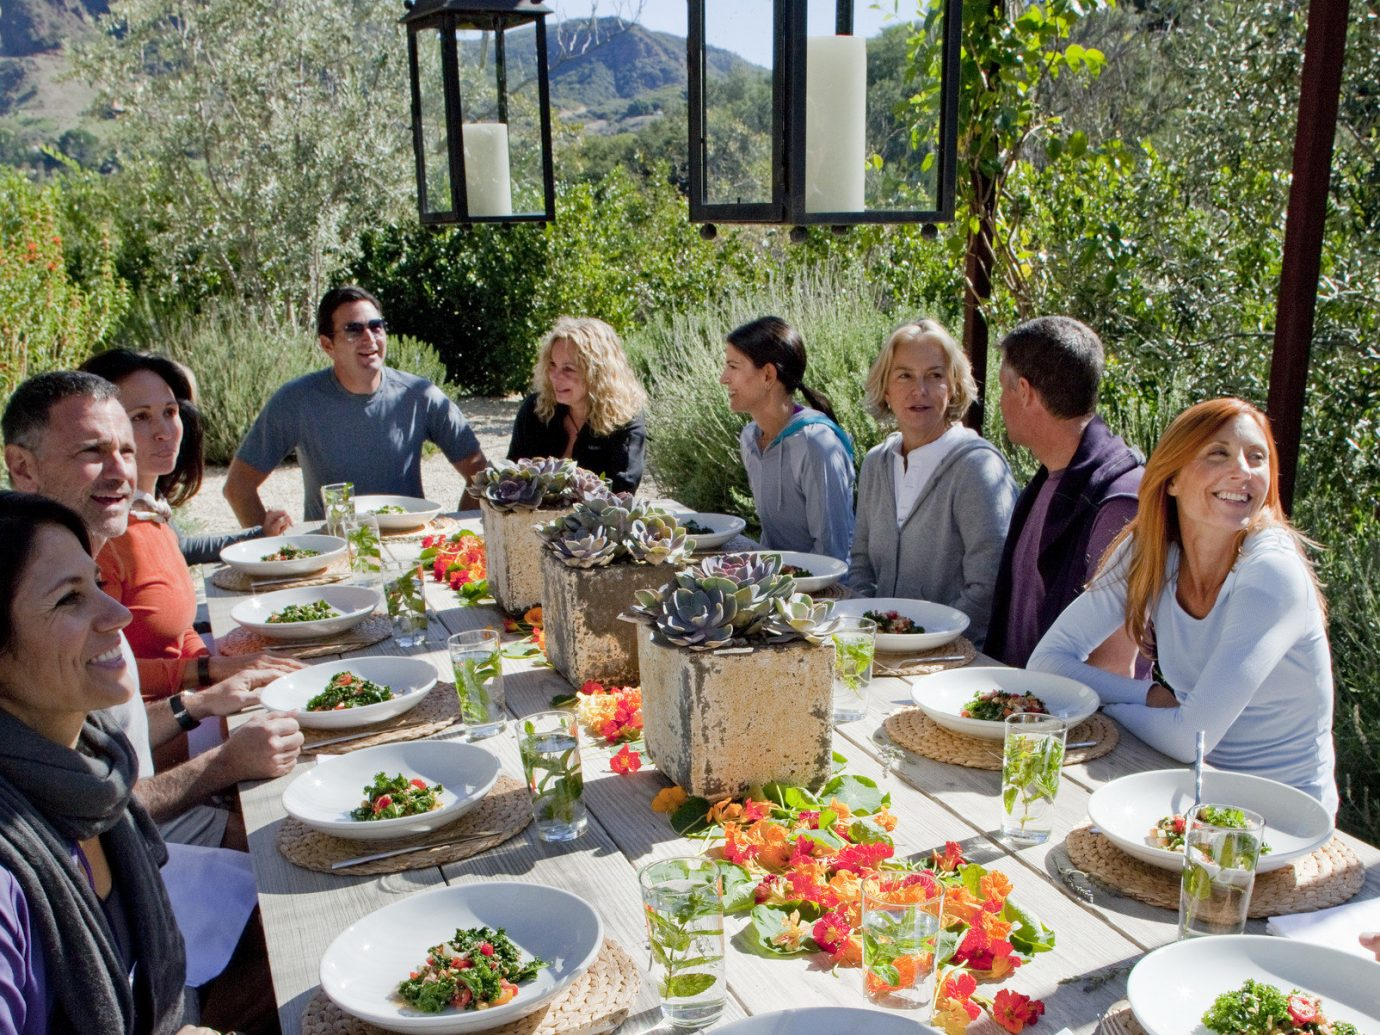 Health + Wellness Hotels Yoga Retreats person tree outdoor table food group people plate meal lunch supper Picnic brunch sense dinner dish restaurant cuisine day dining table